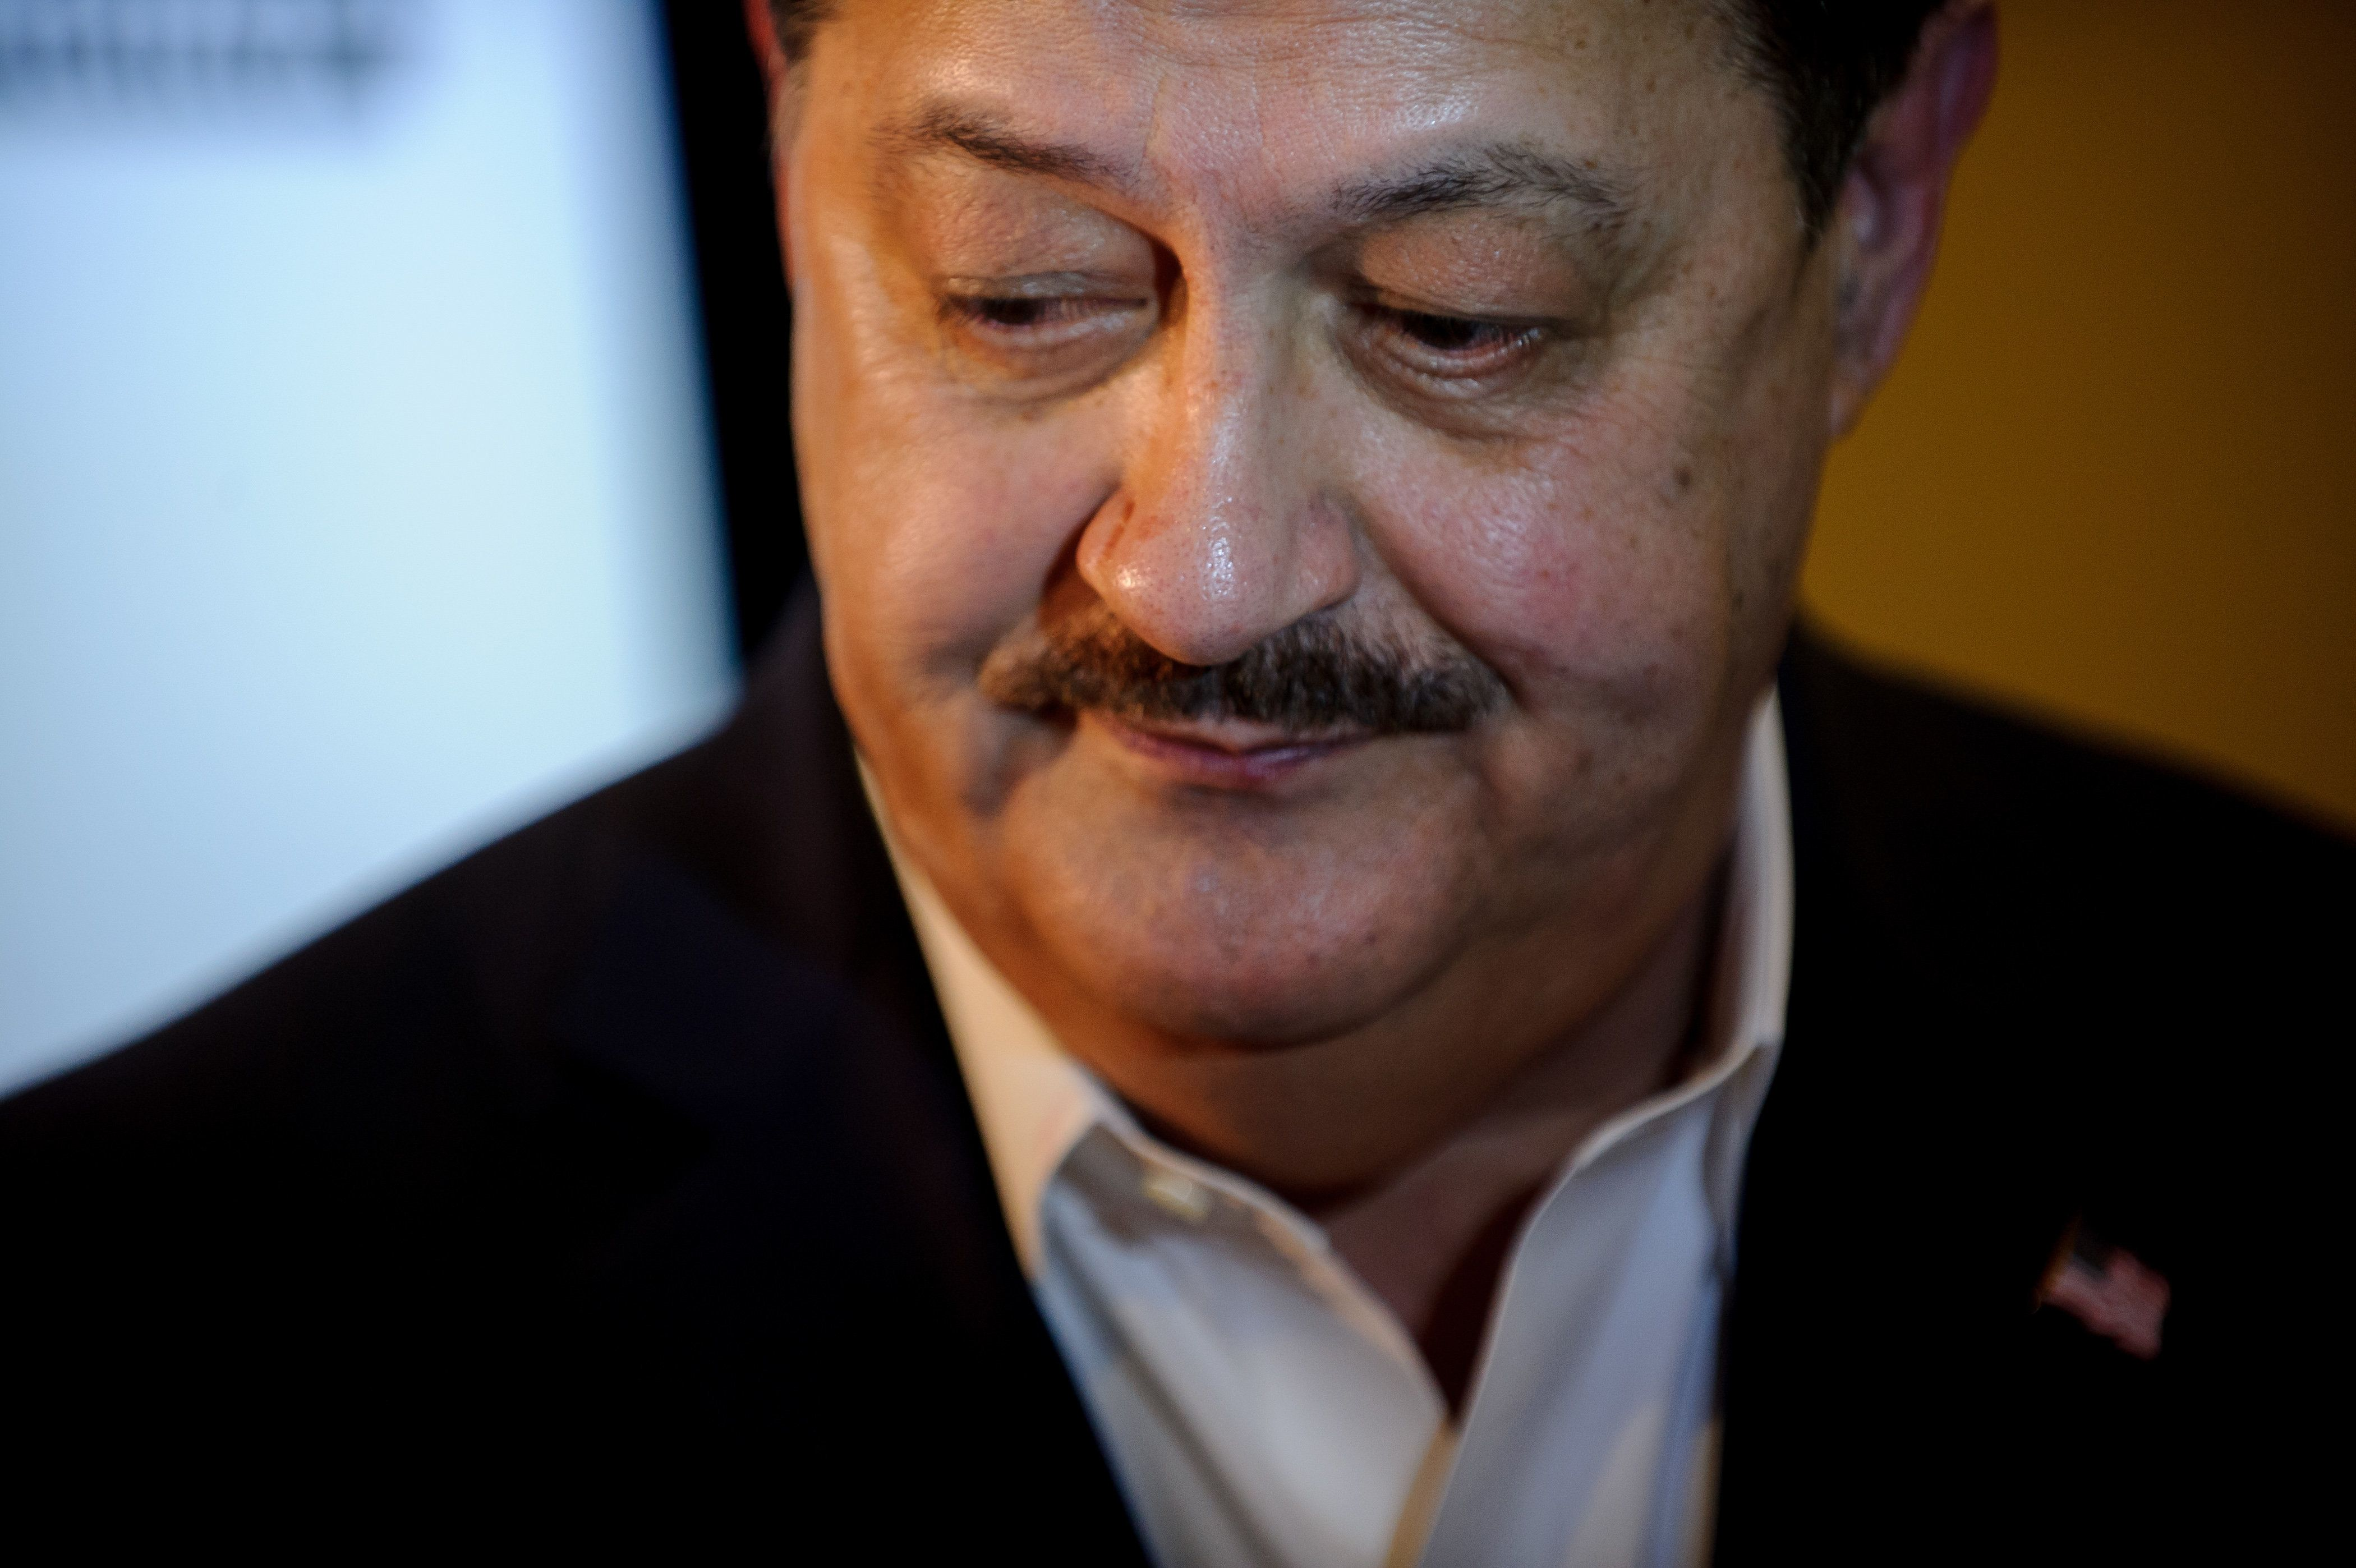 CHARLESTON, WV - MAY 08: U.S. Senate Republican primary candidate Don Blankenship is interviewed by media outlets following the closing of the polls May 8, 2018 in Charleston, West Virginia. President Donald Trump weighed in on the Republican primary yesterday in a tweet, urging West Virginia to vote for Blankenship's opponents, declaring the former coal executive 'can't win the General Election . . . '  (Photo by Jeff Swensen/Getty Images)